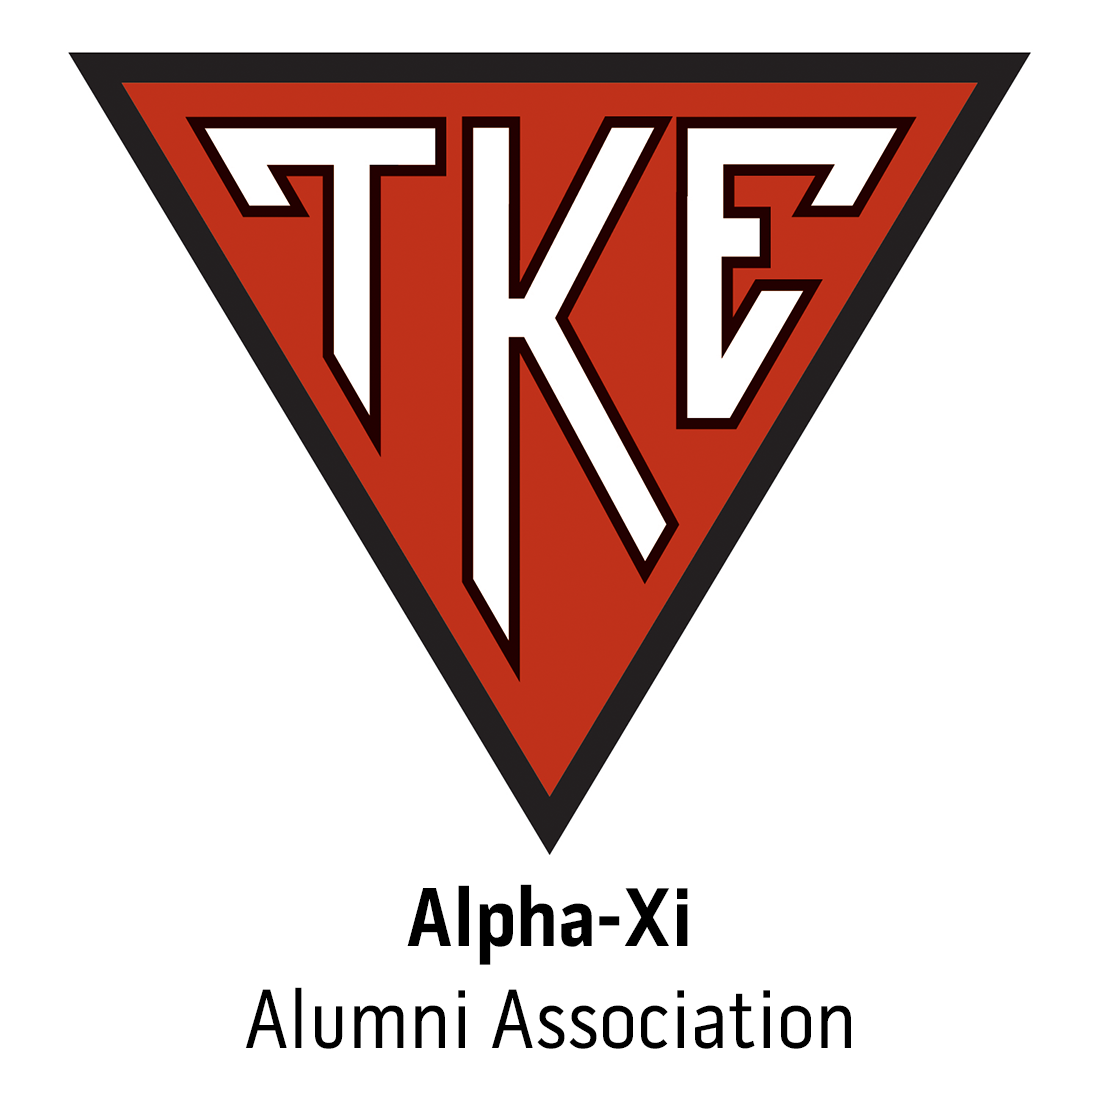 Alpha-Xi Alumni Association Alumni at Drake University